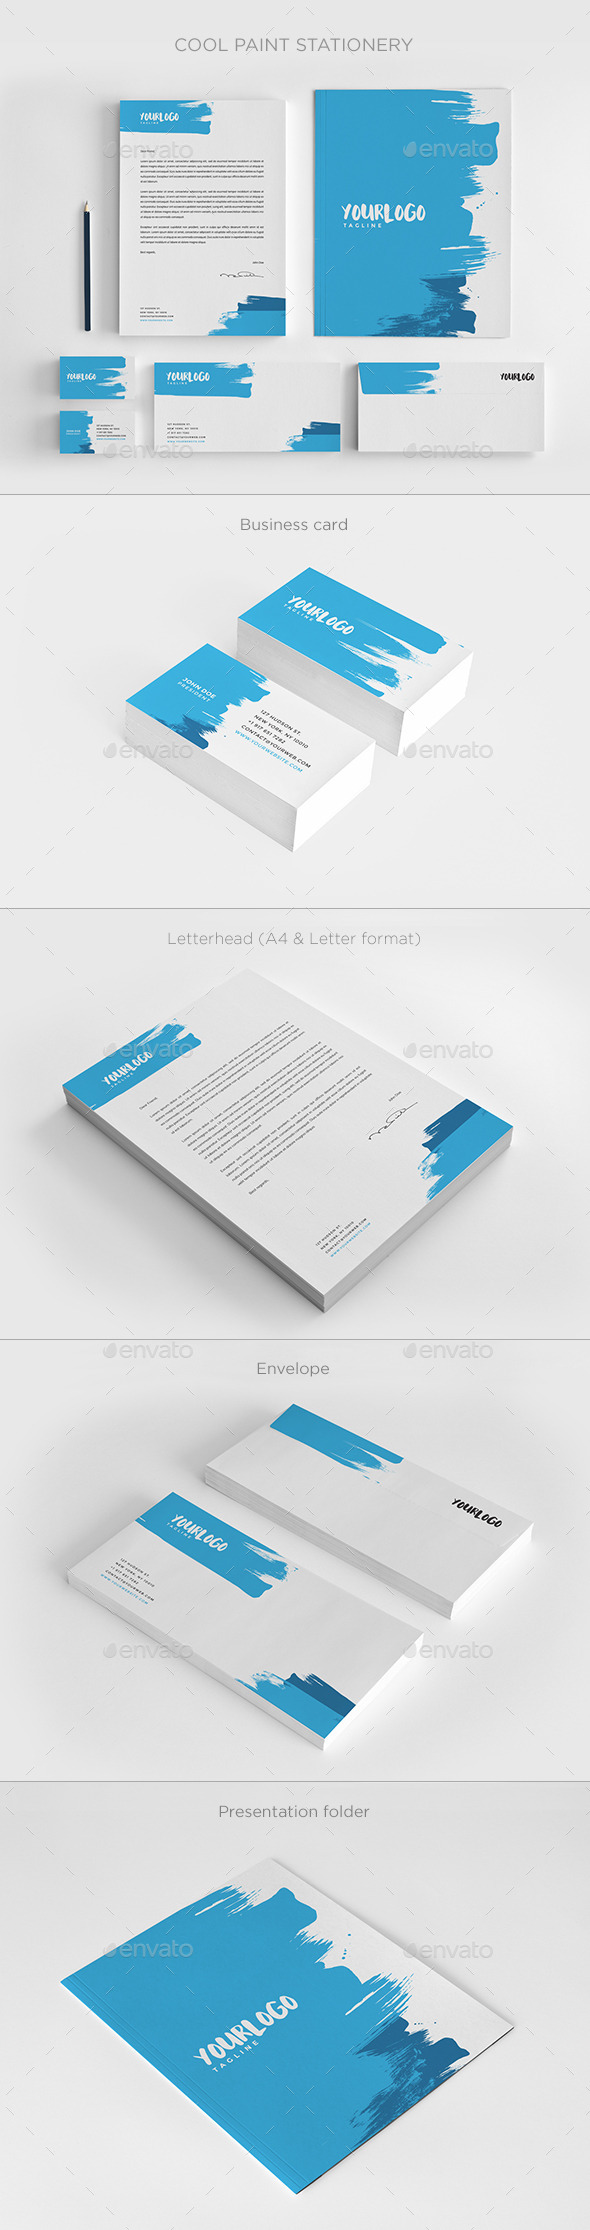 Cool Paint Stationery - Stationery Print Templates